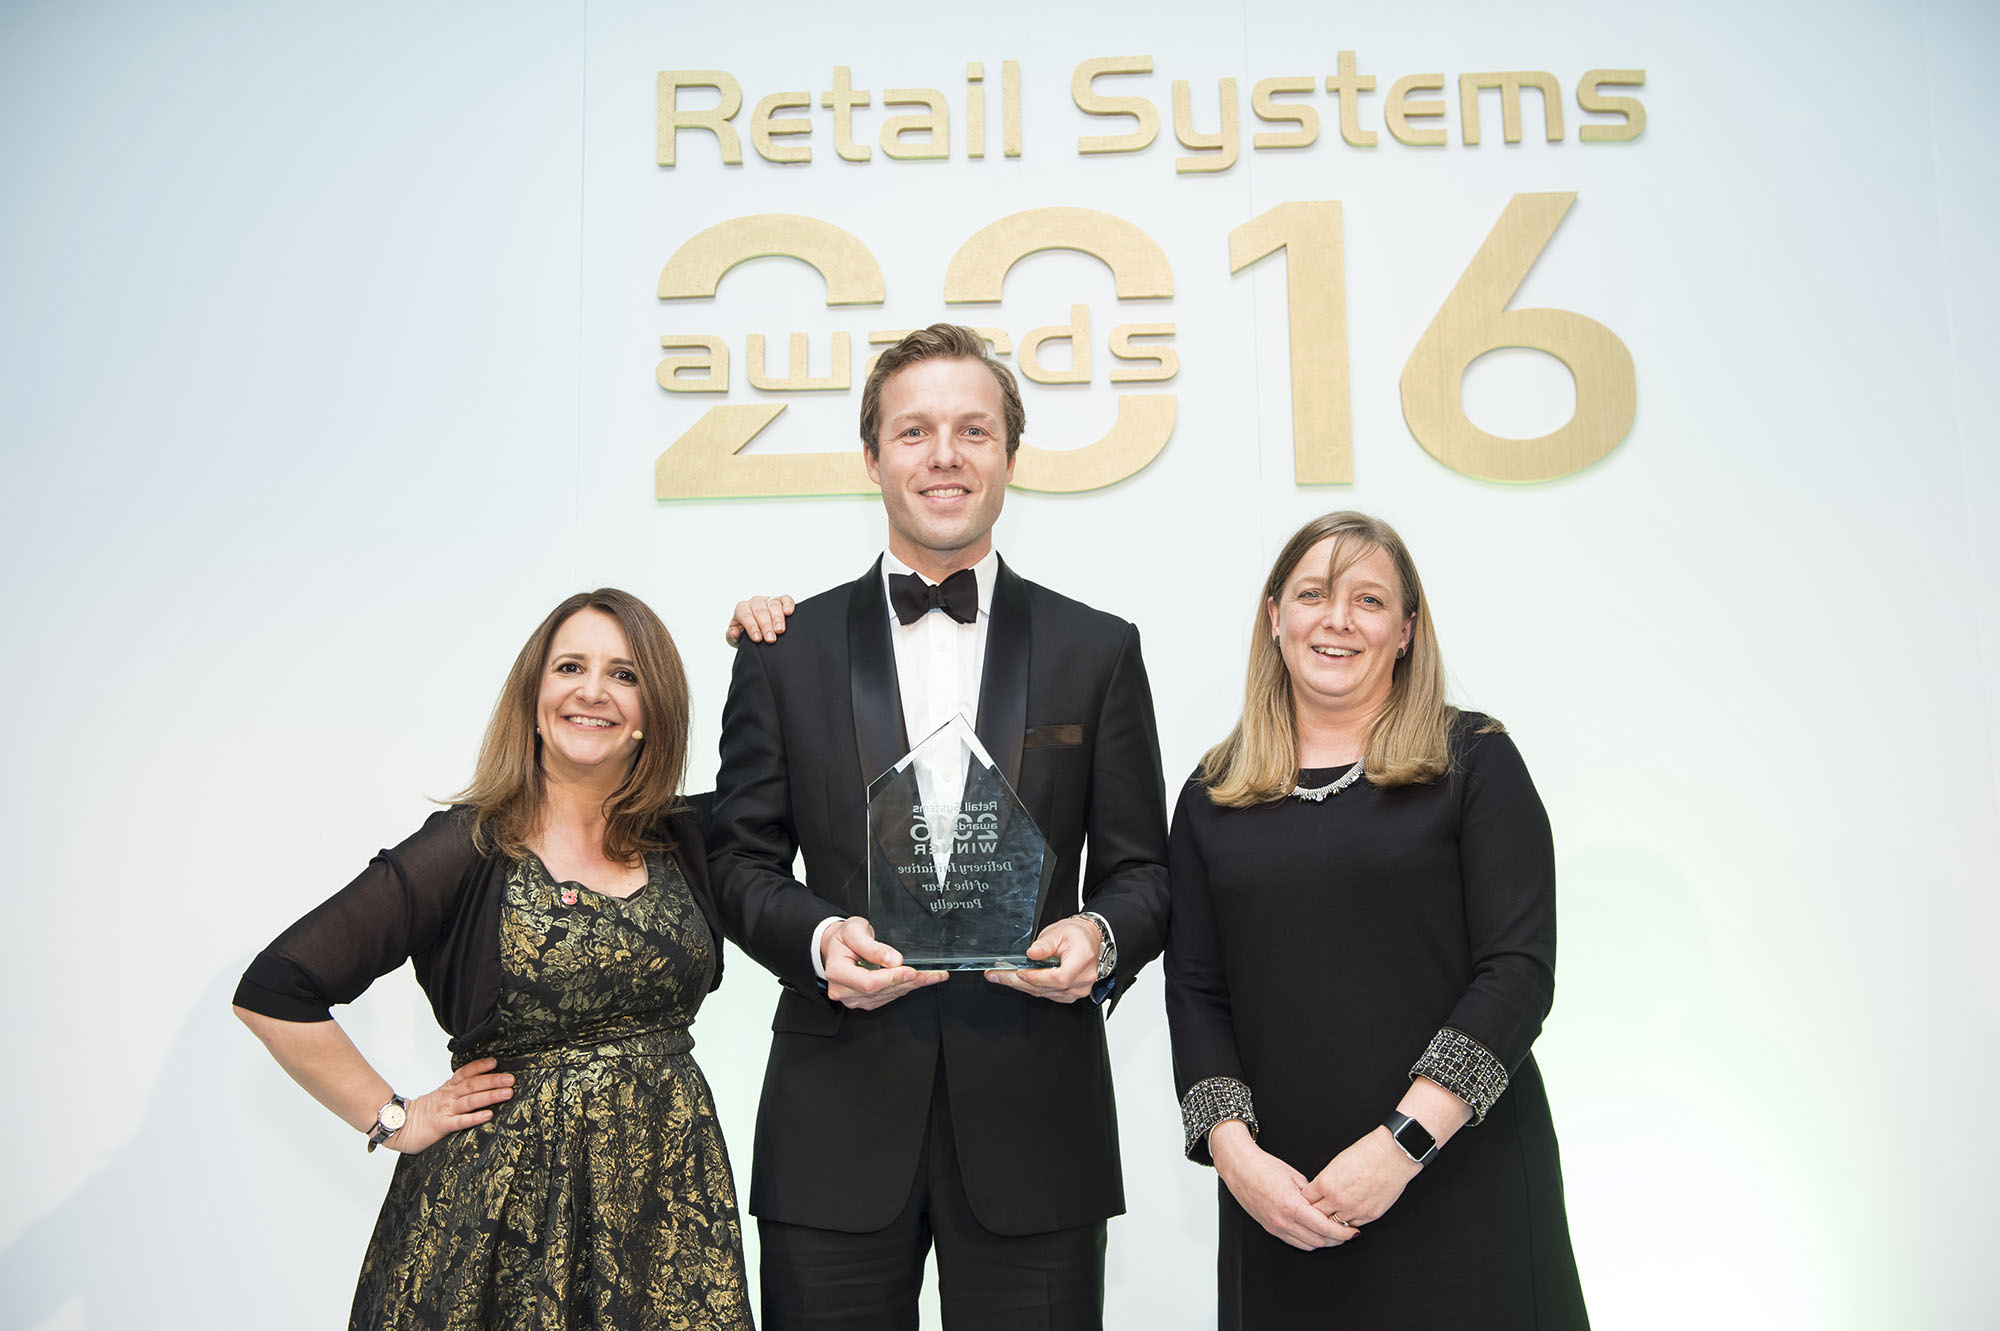 Parcelly wins 'Delivery Initiative of the Year 2016' at Retail Systems Awards